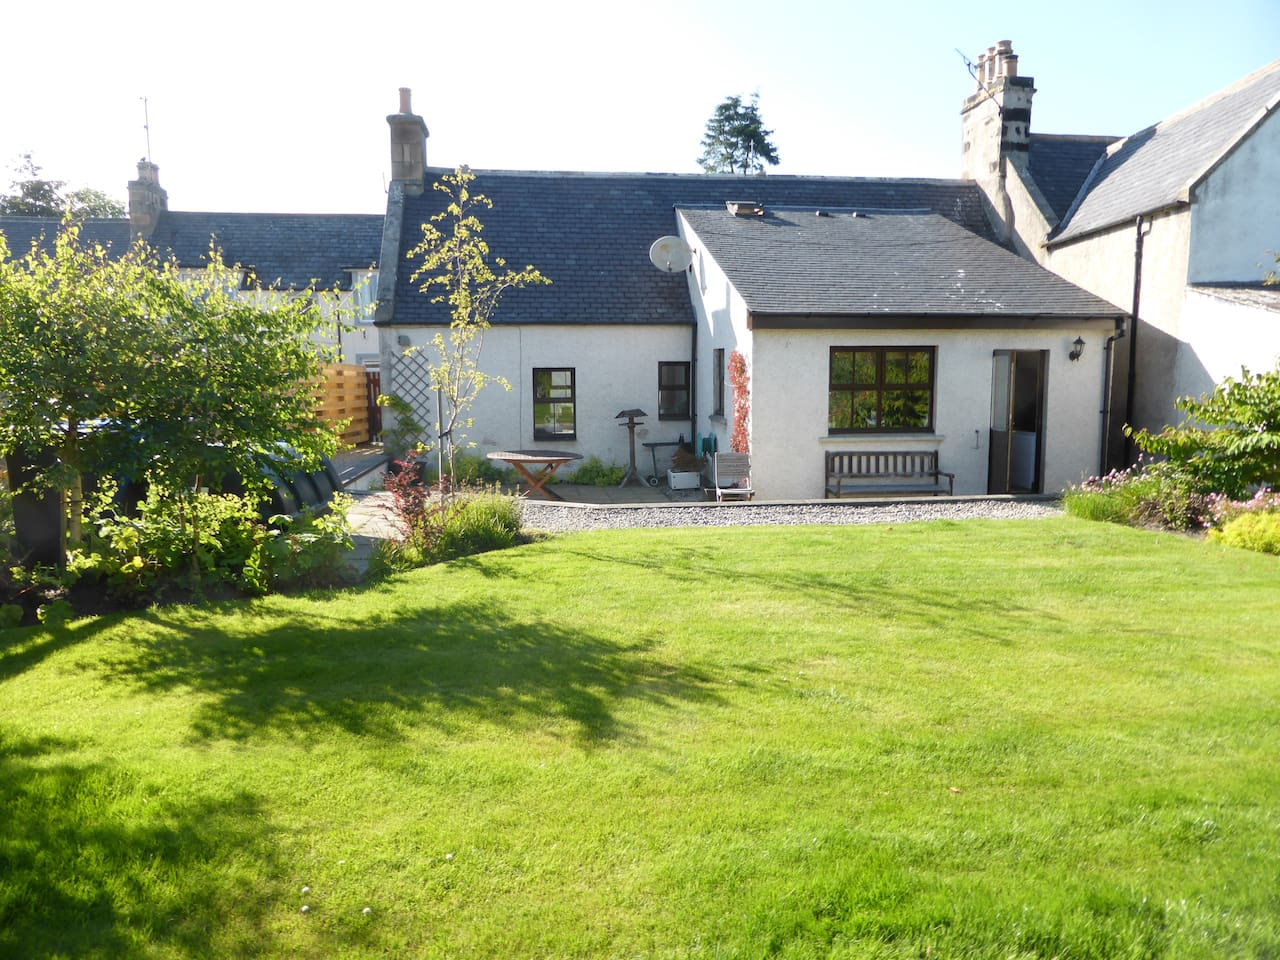 The cottage has a large, enclosed and sunny back garden with outdoor seating.